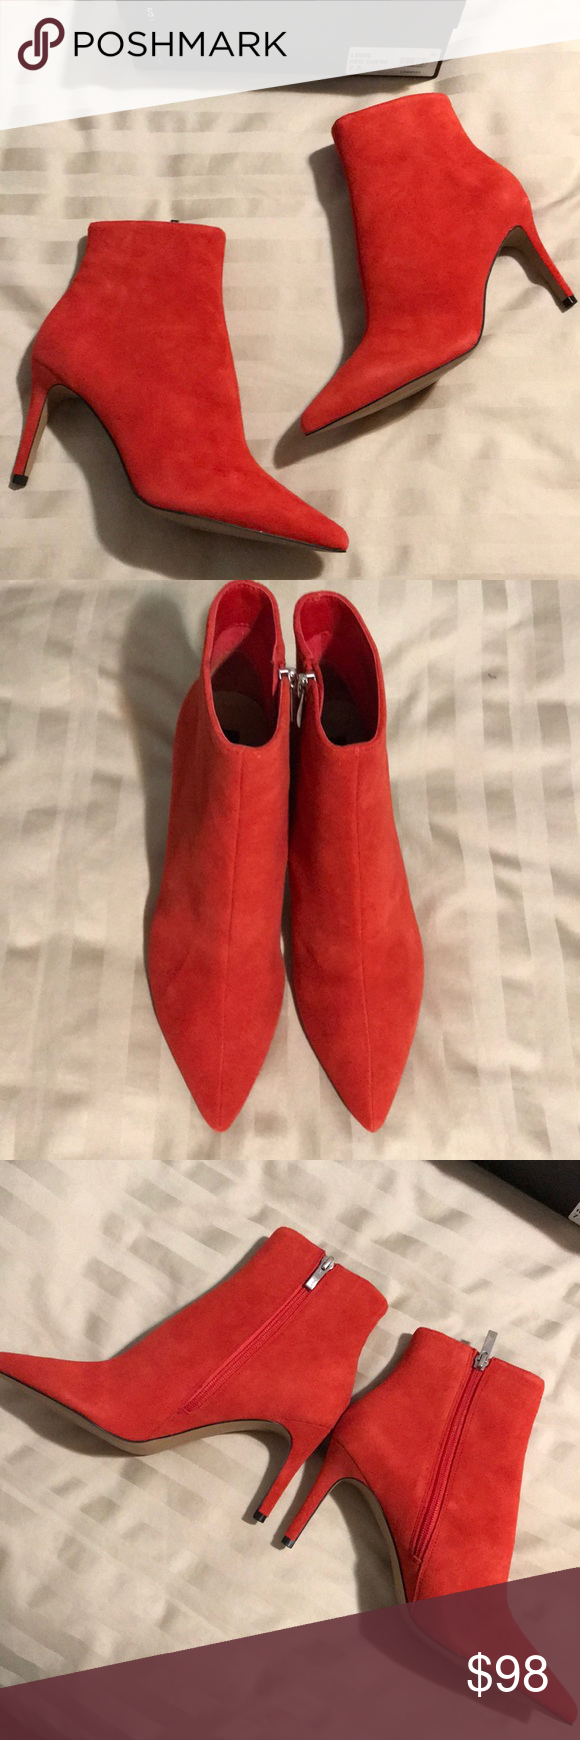 68c15d64a Steven by Steve Madden Logic Booties BNWB! Steven by Steve Madden red suede  Logic booties. Also have the white leather ones for sale.